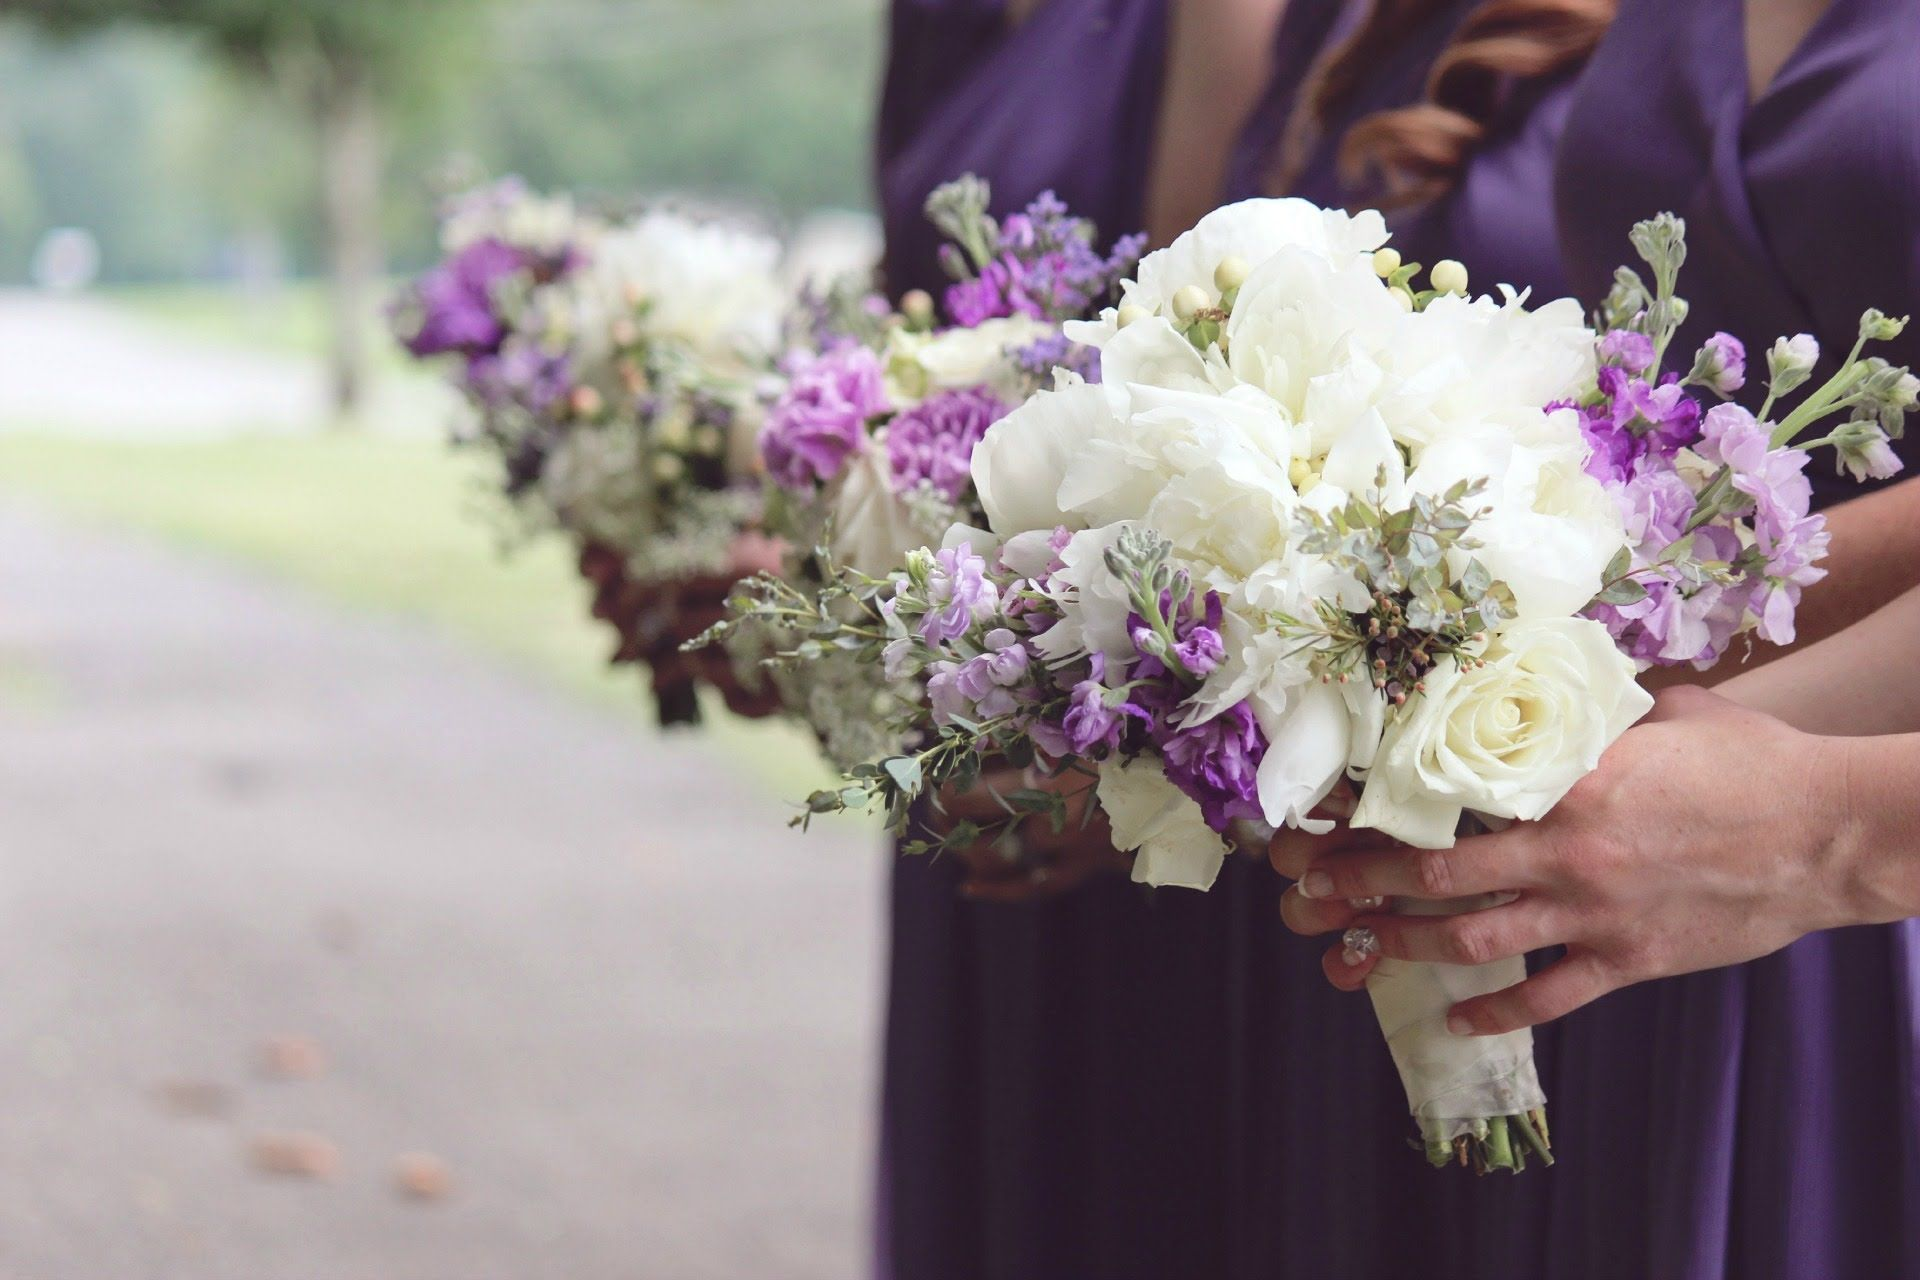 How to Make a Bridal Bouquet - Step-by-step instructions ...